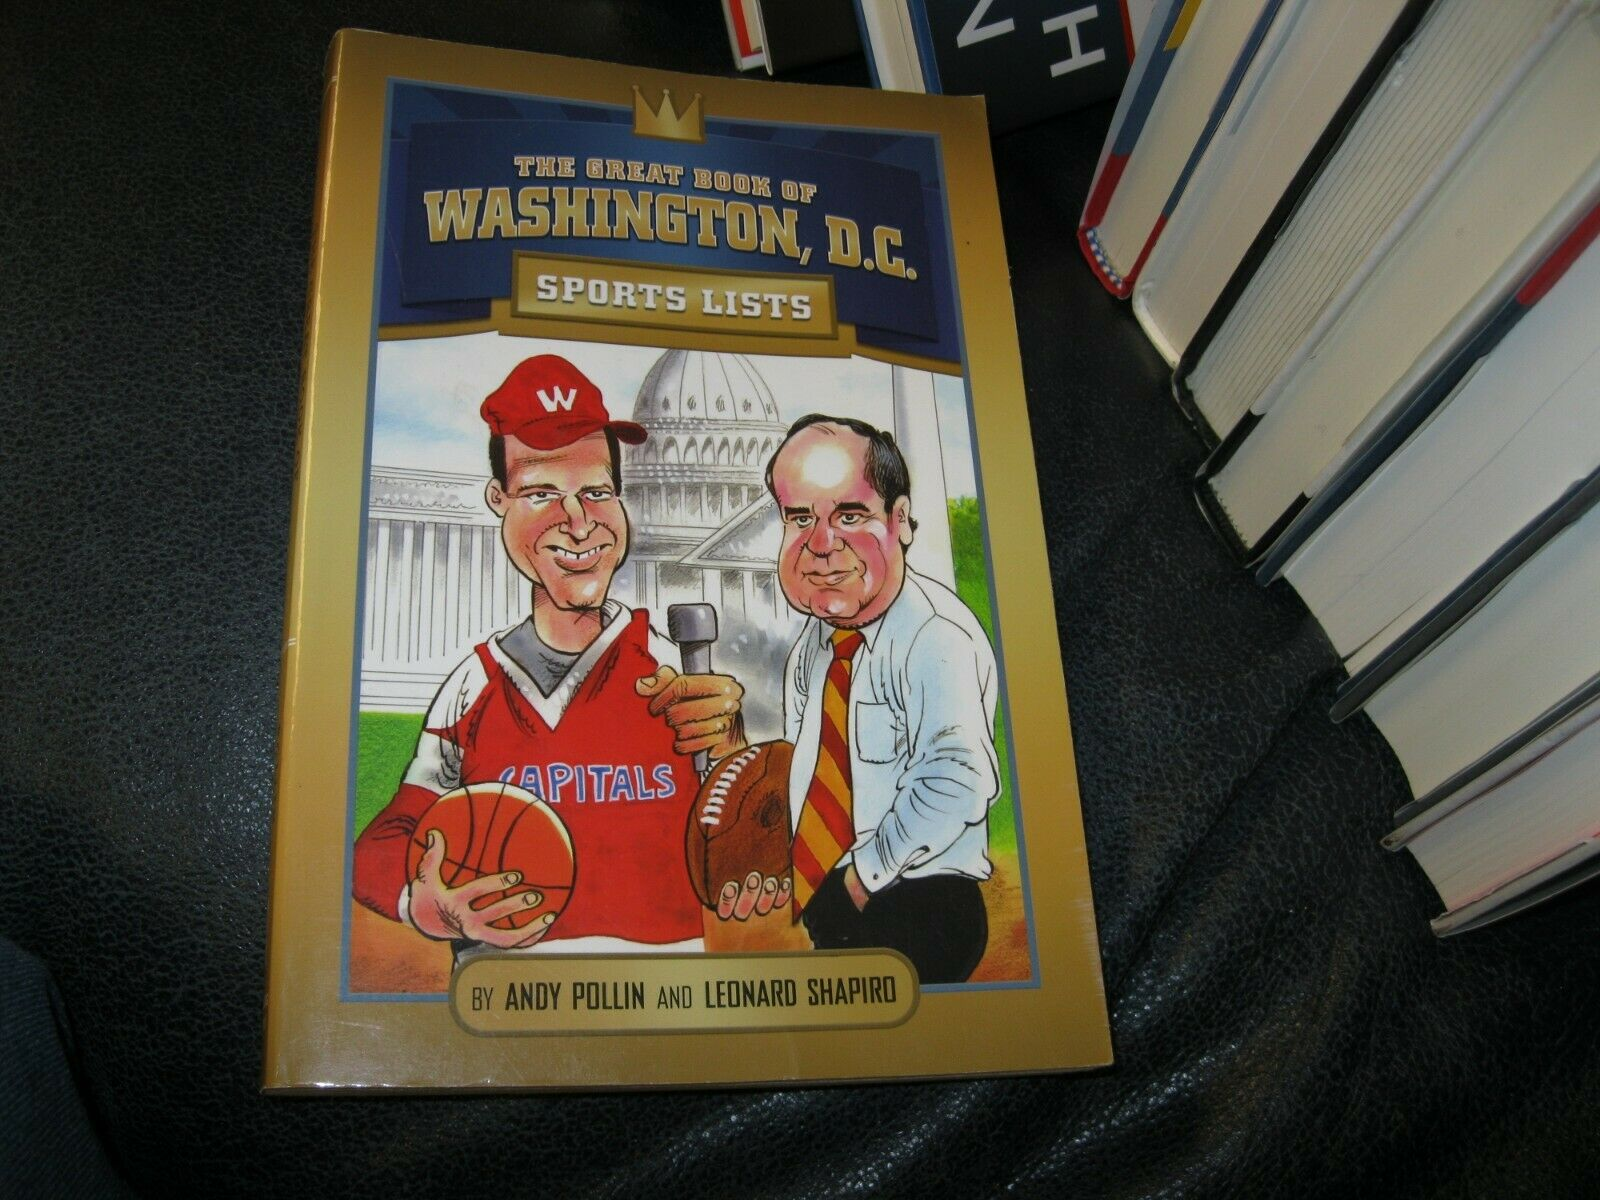 The Great Book of Washington DC Sports List Autographed by Leonard Shapiro